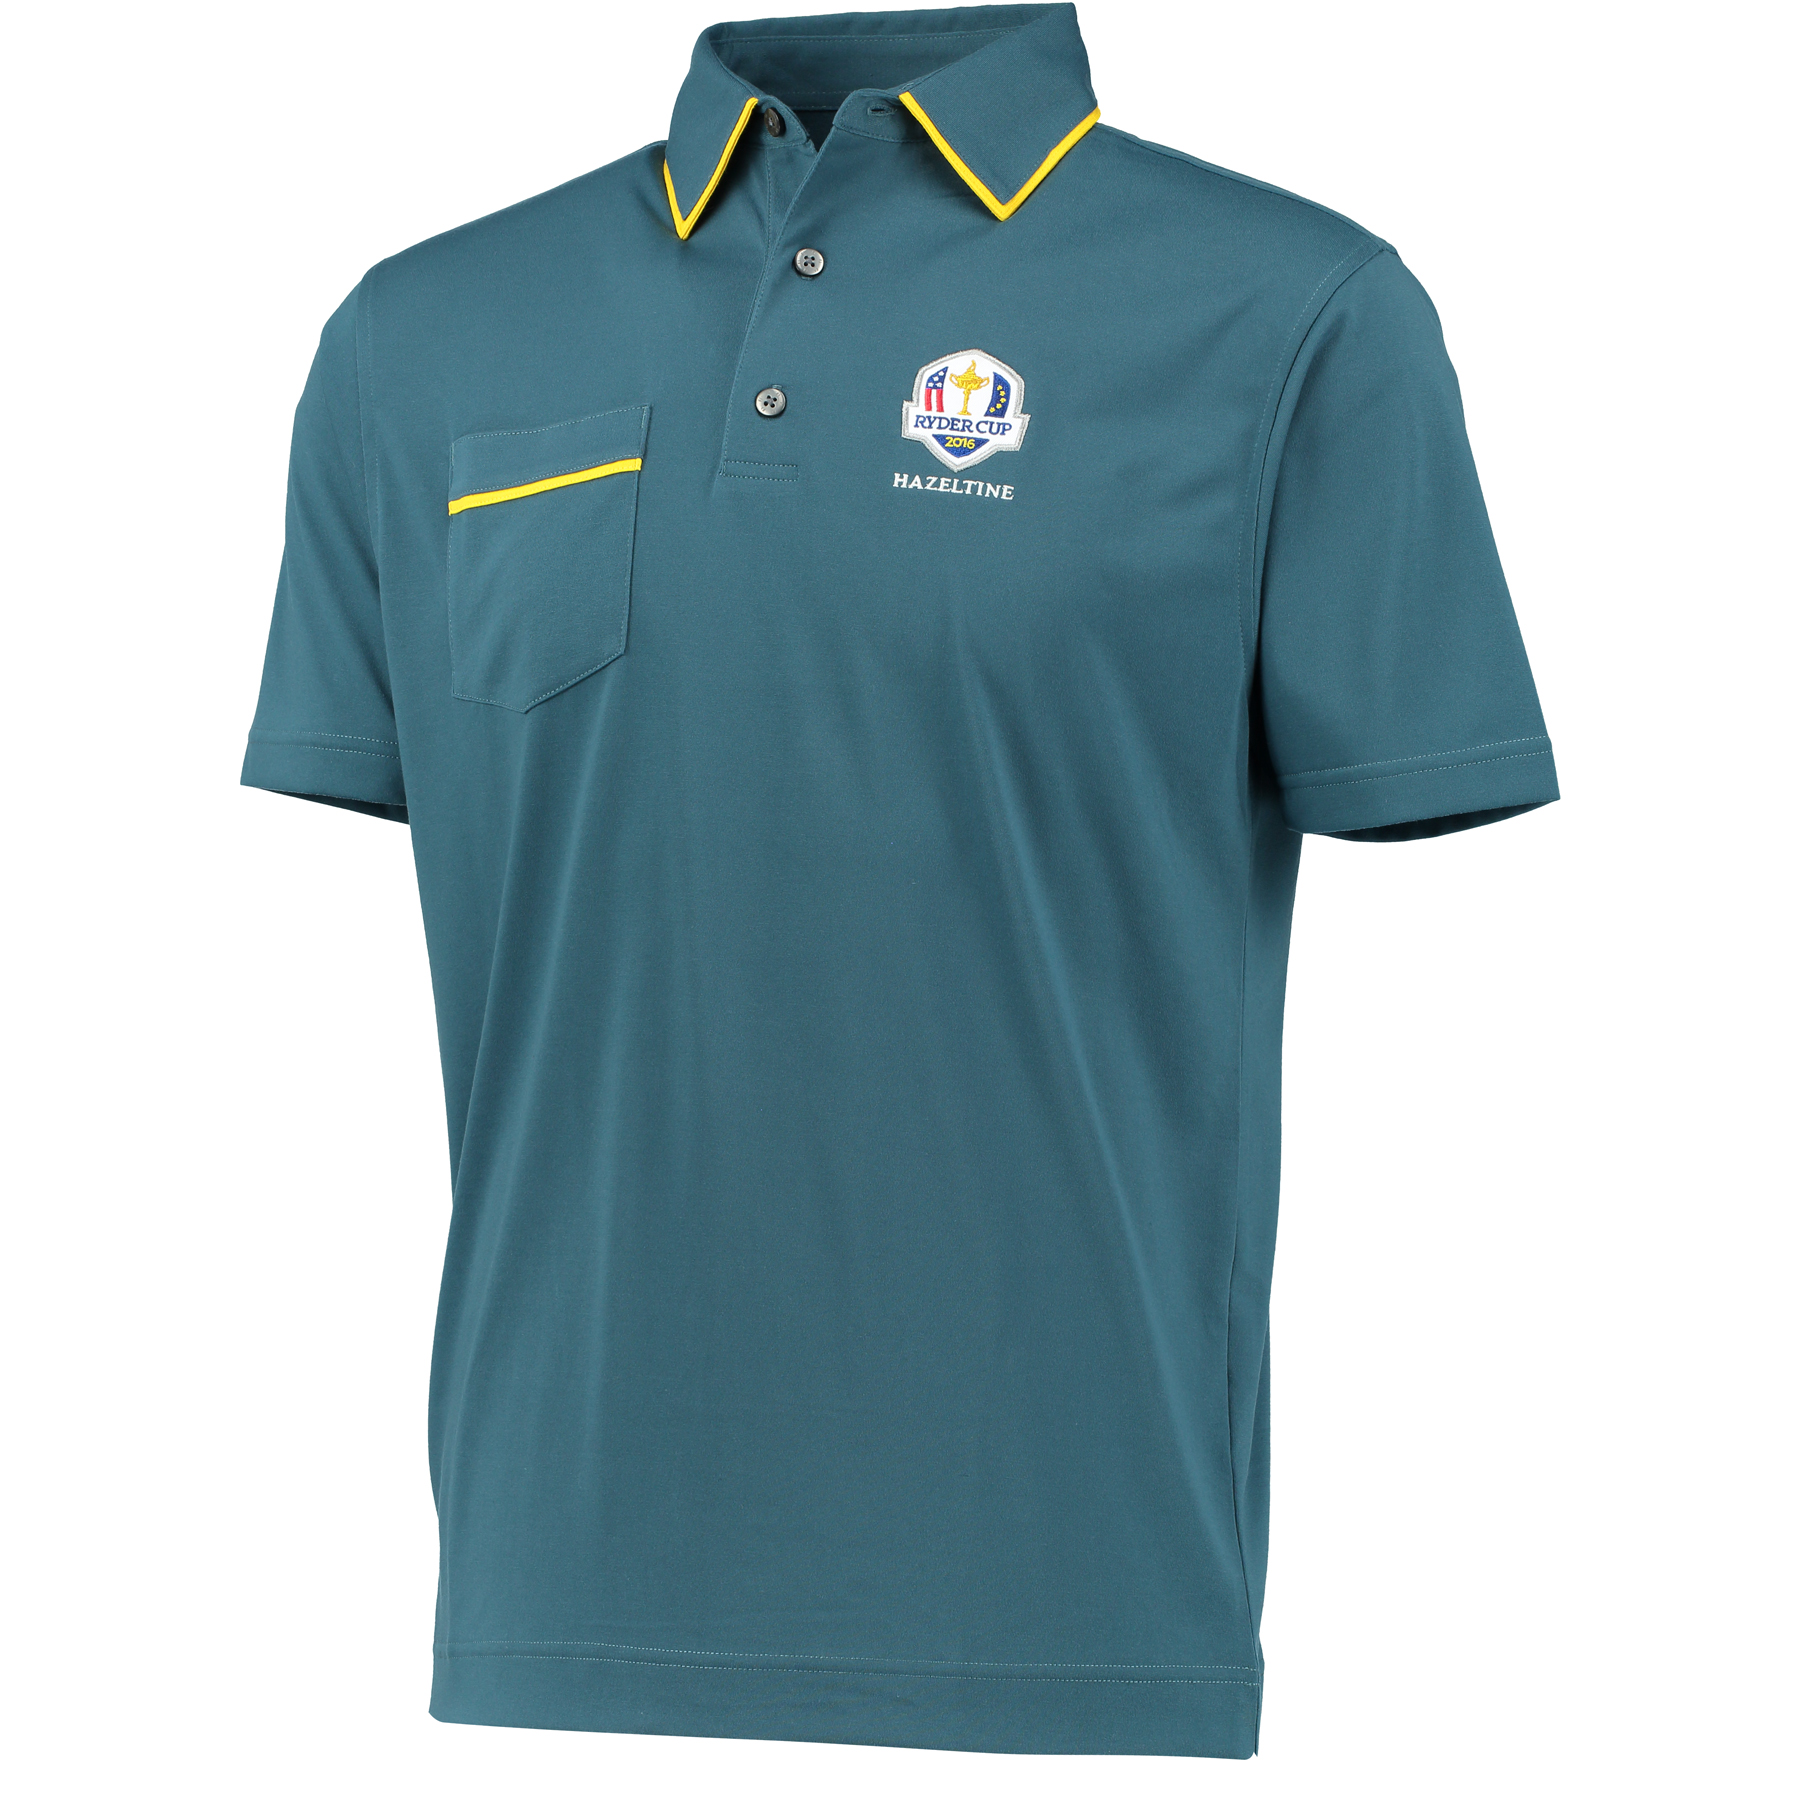 The 2016 Ryder Cup Solid Jersey Polo With Pocket - Graphite/Chrome Yellow